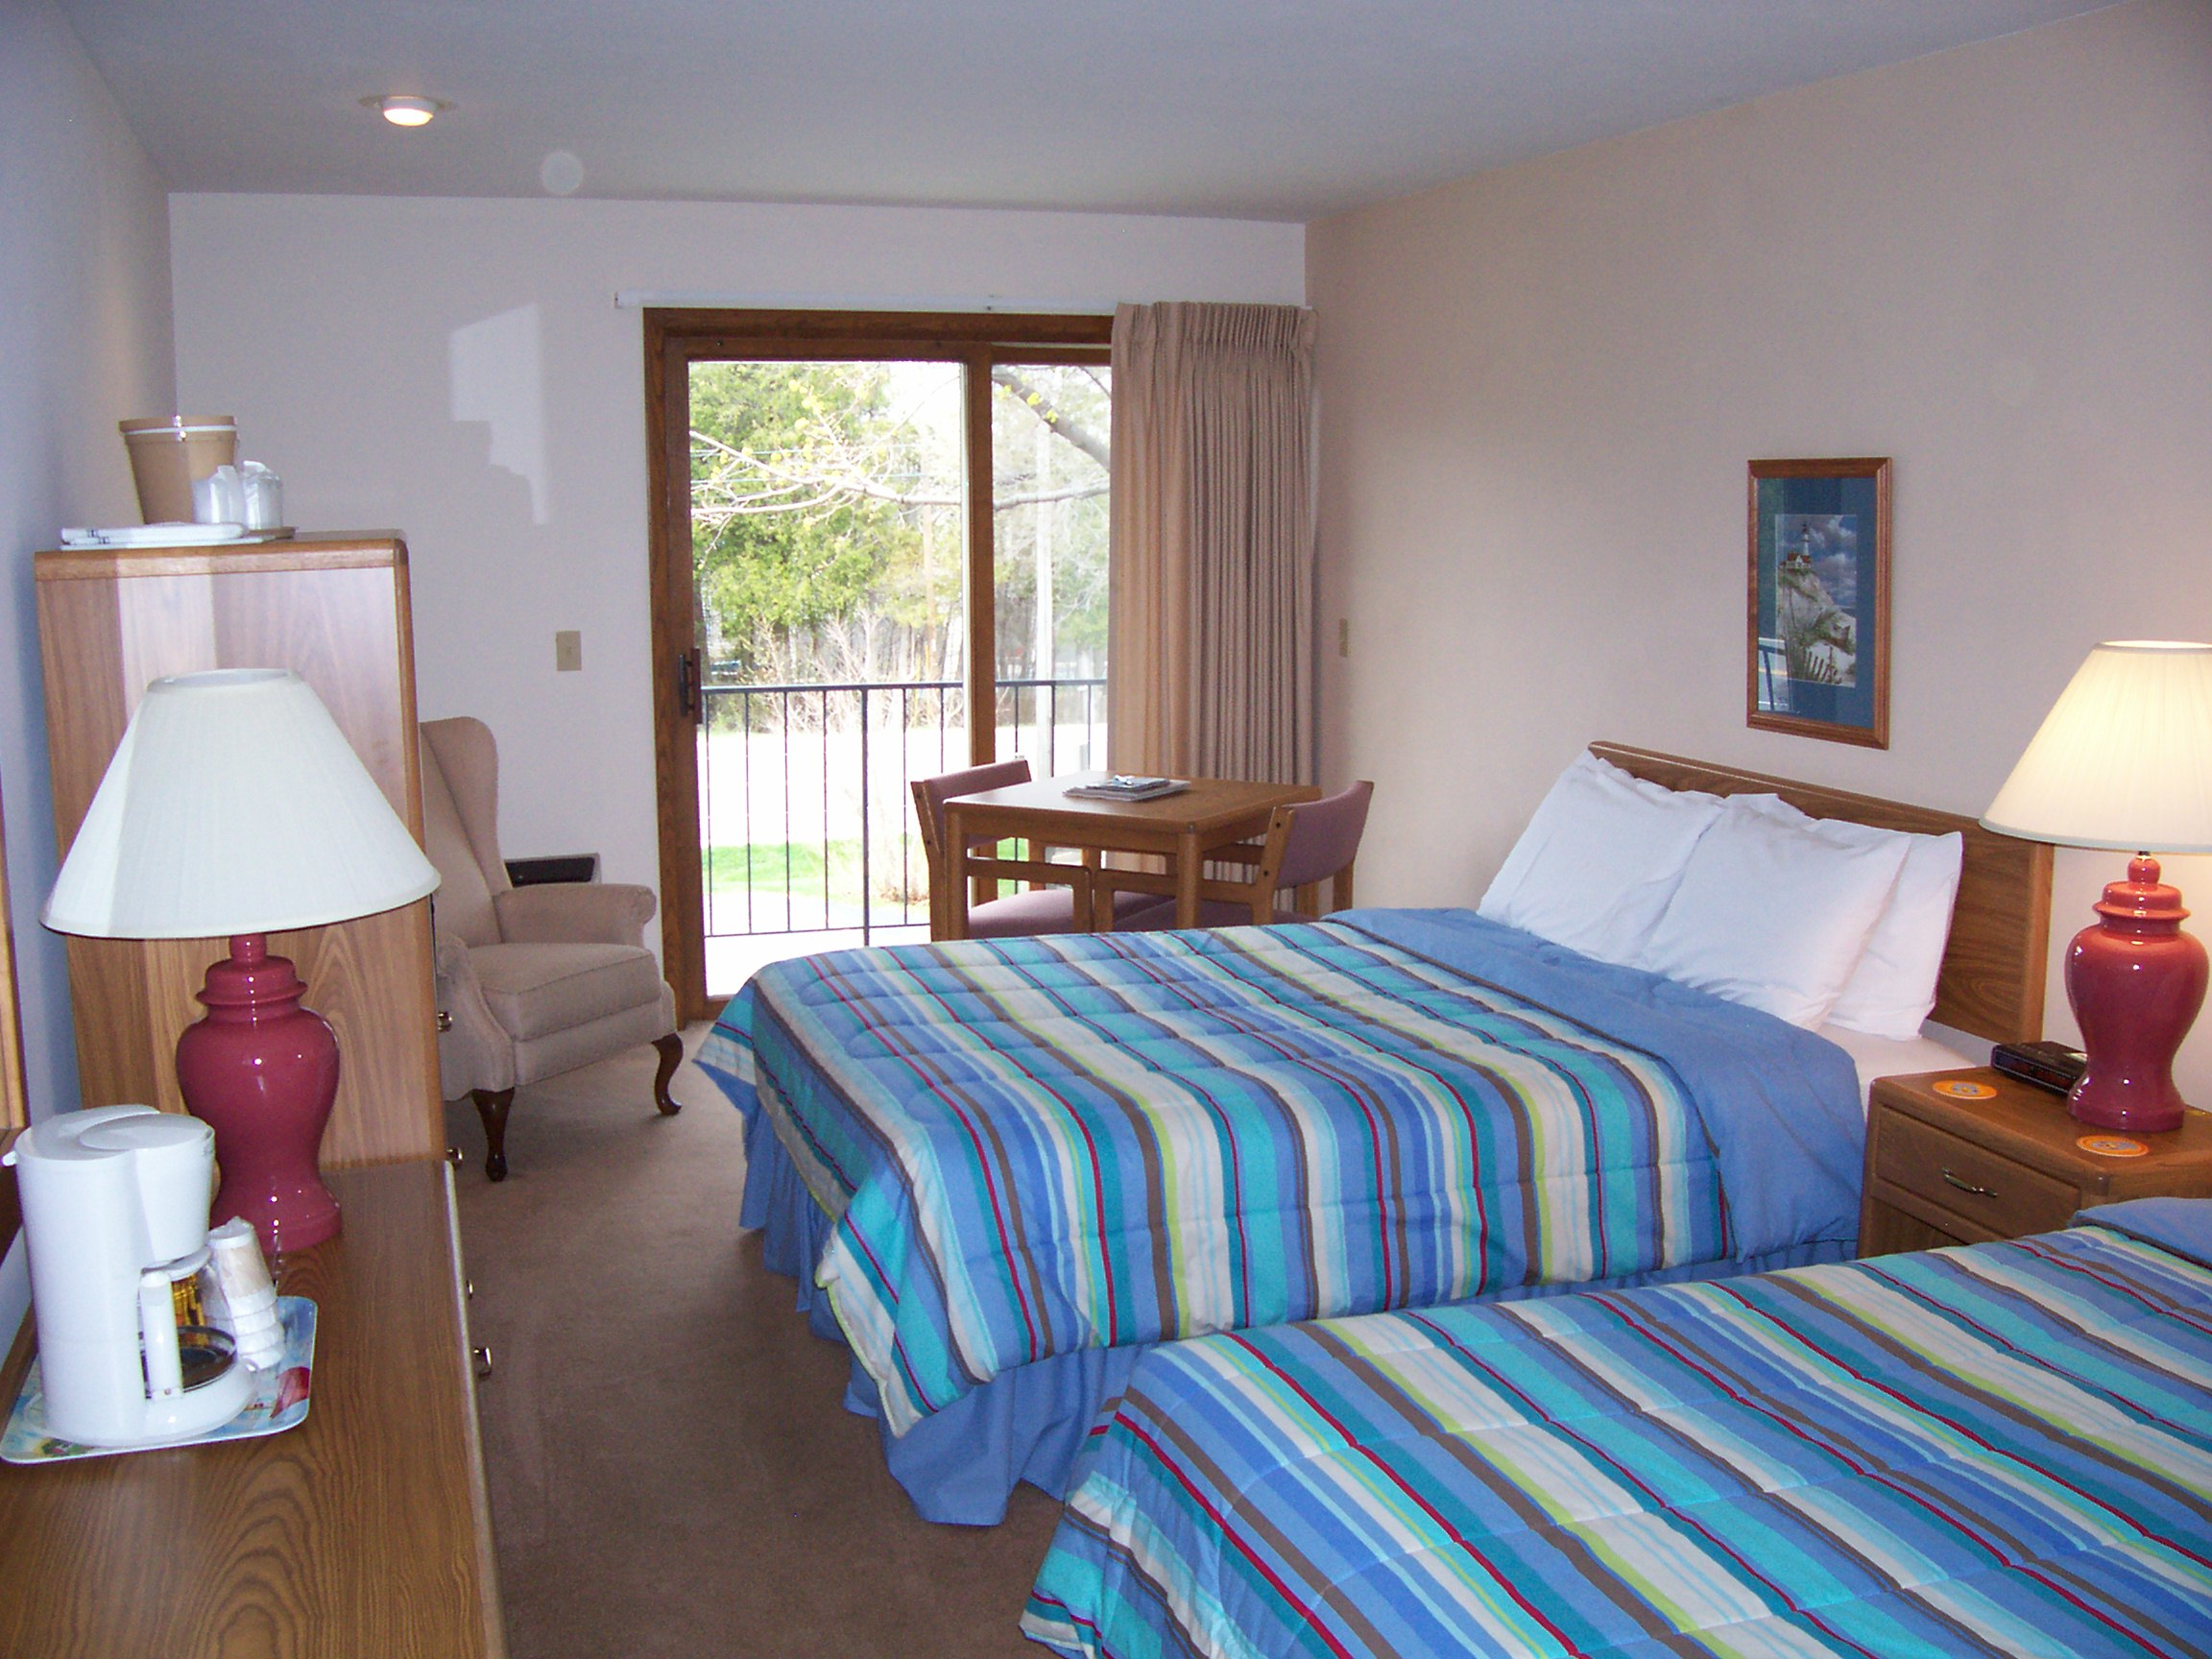 Lull Abi Inn bedroom in Egg Harbor WI in Door County Wi